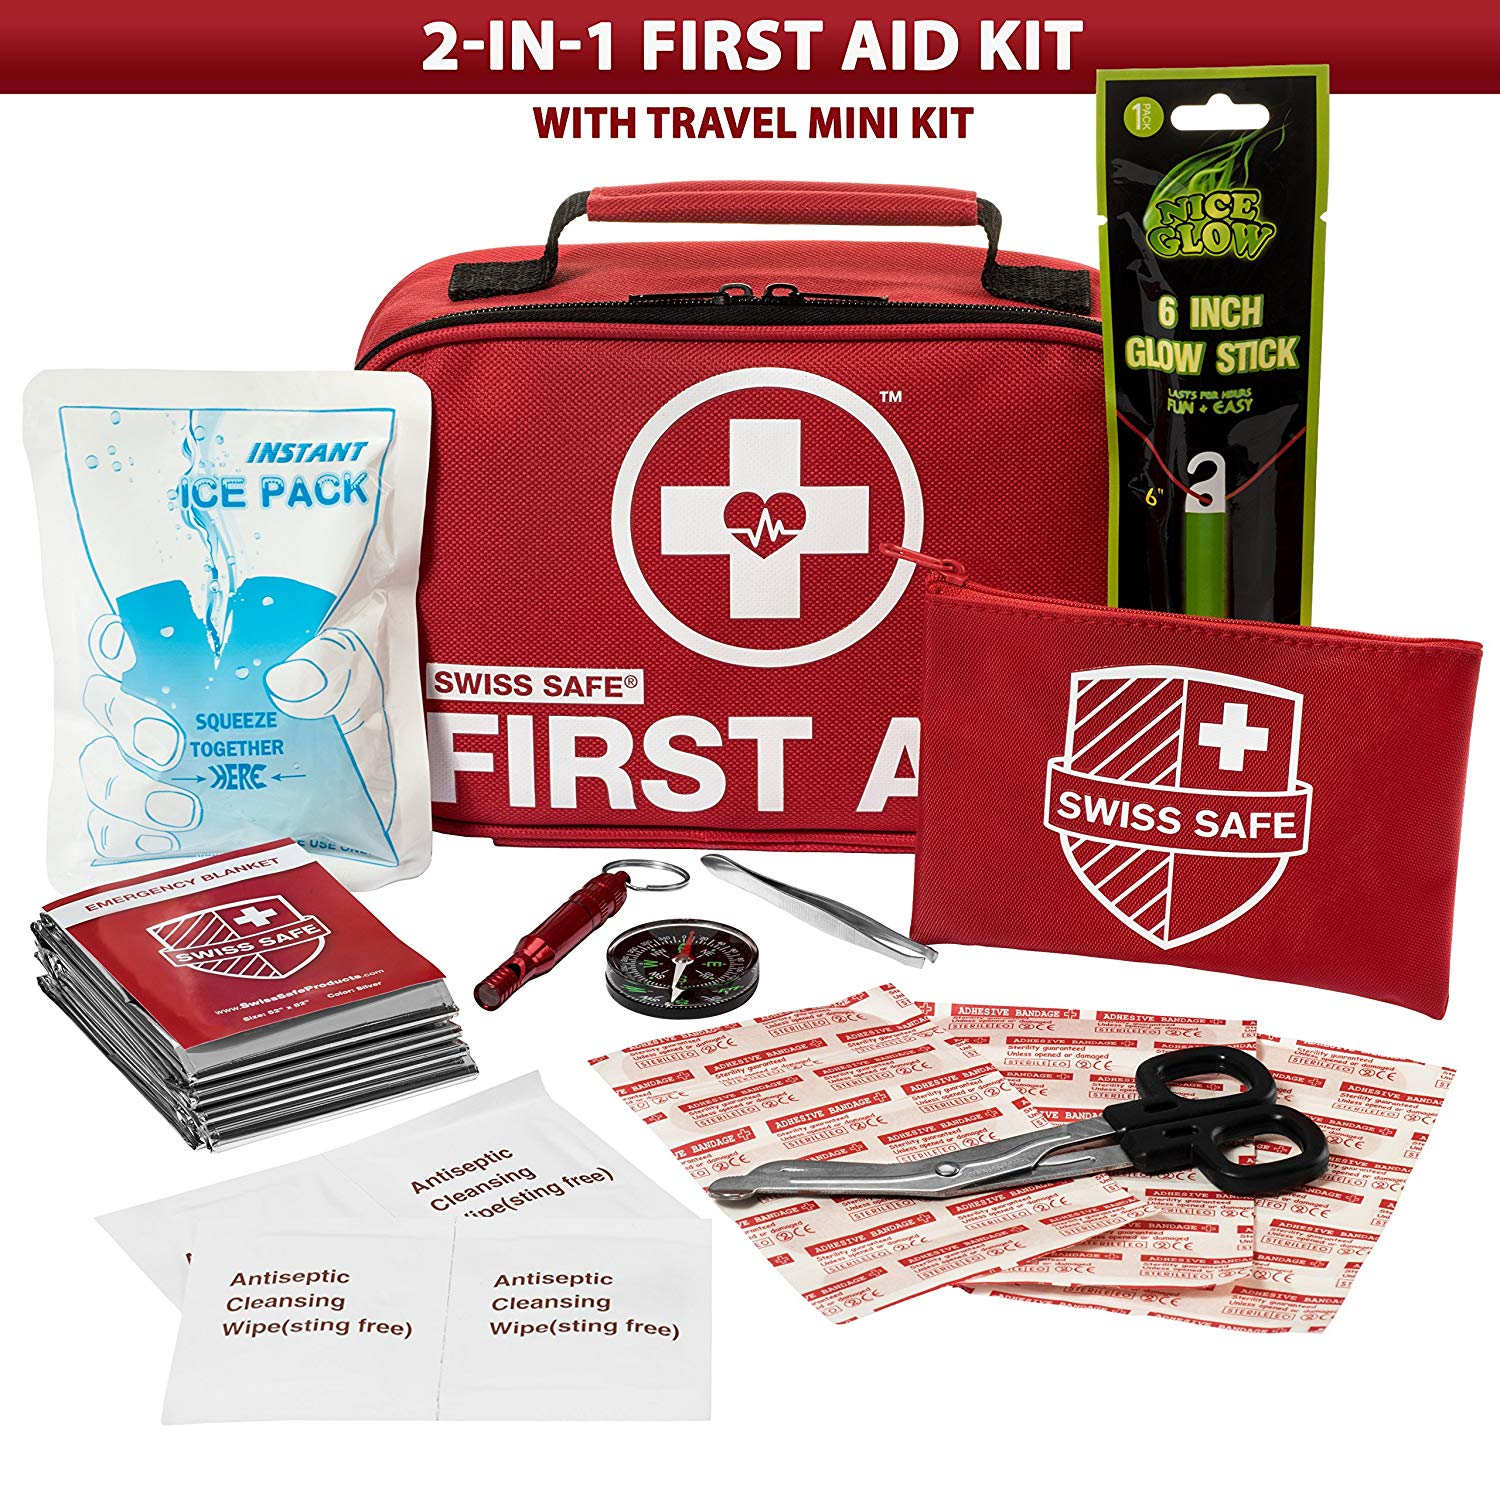 swiff-safe-first-aid-kit